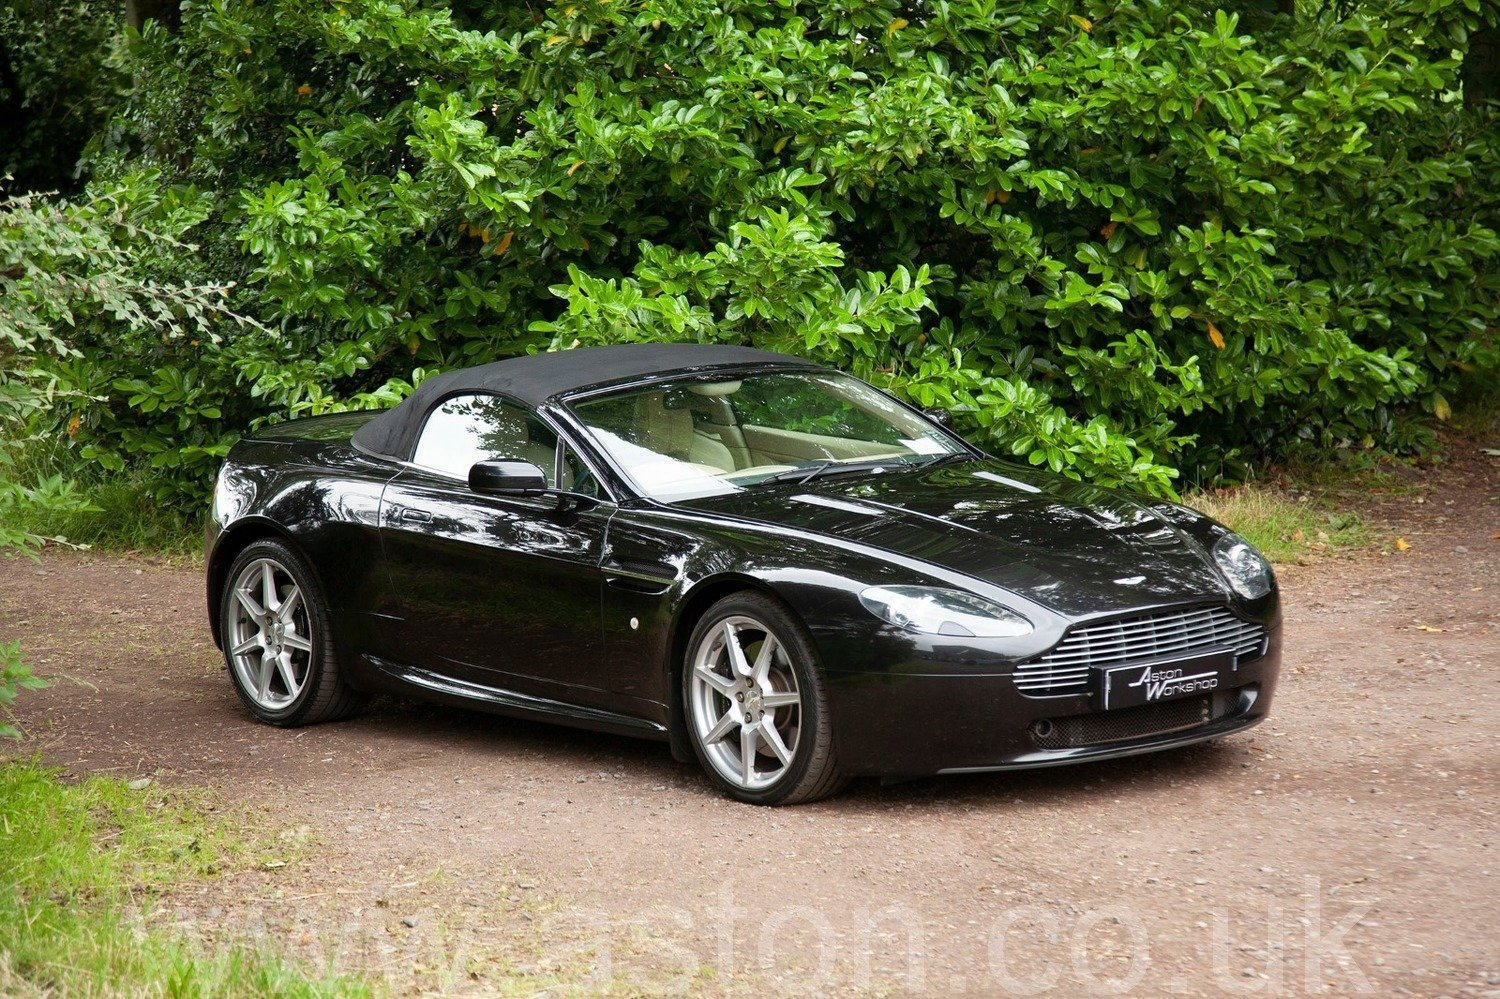 2007 Aston Martin V8 Vantage 4.3 Roadster Manual -New Clutch SOLD (picture 2 of 6)